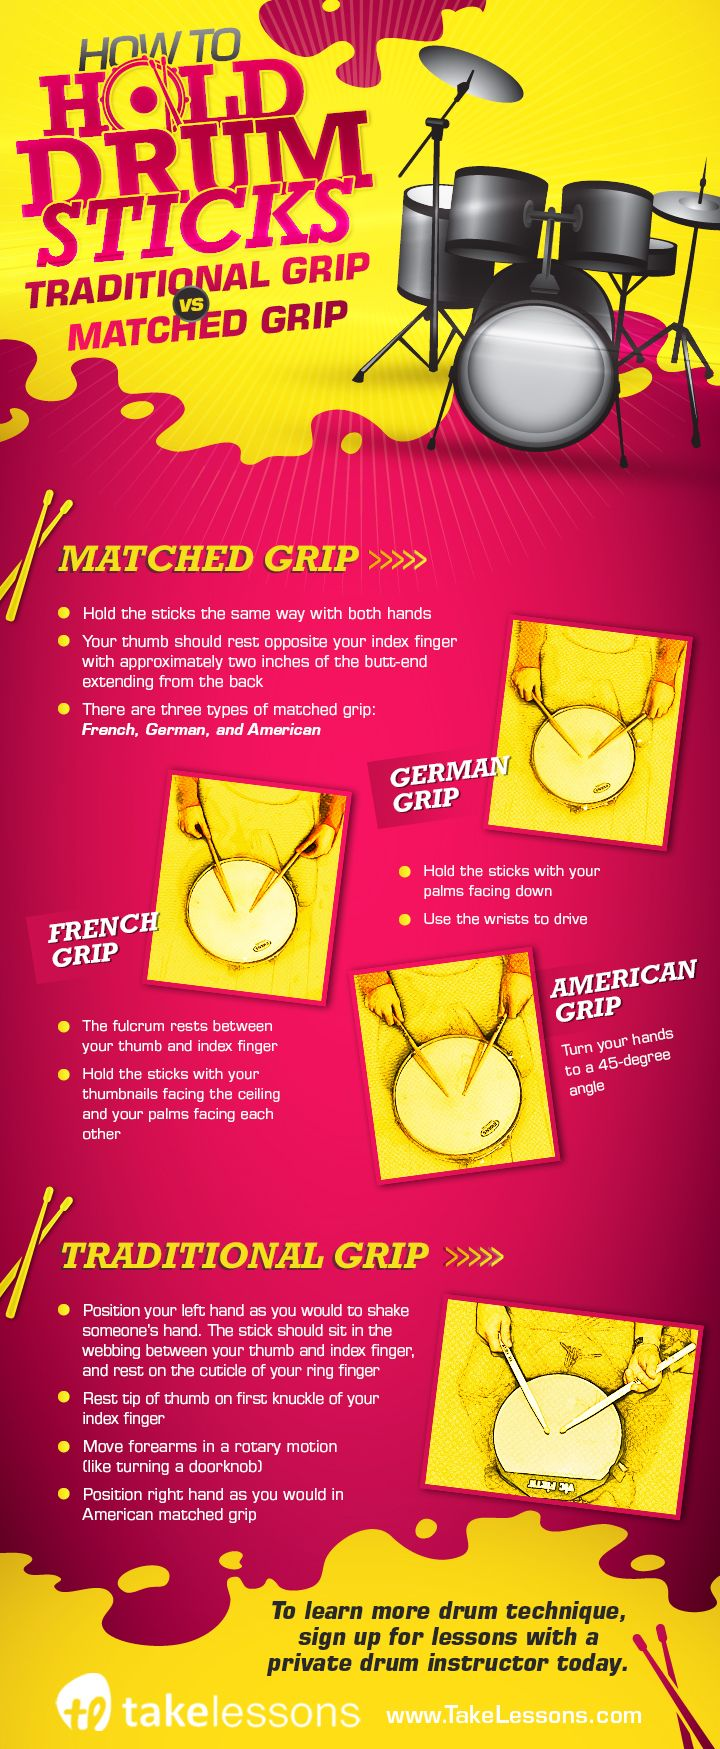 How to Hold Drum Sticks: Traditional Grip vs. Matched Grip [infographic] http://takelessons.com/blog/how-to-hold-drum-sticks-z07?utm_source=Social&utm_medium=Blog&utm_campaign=Pinterest